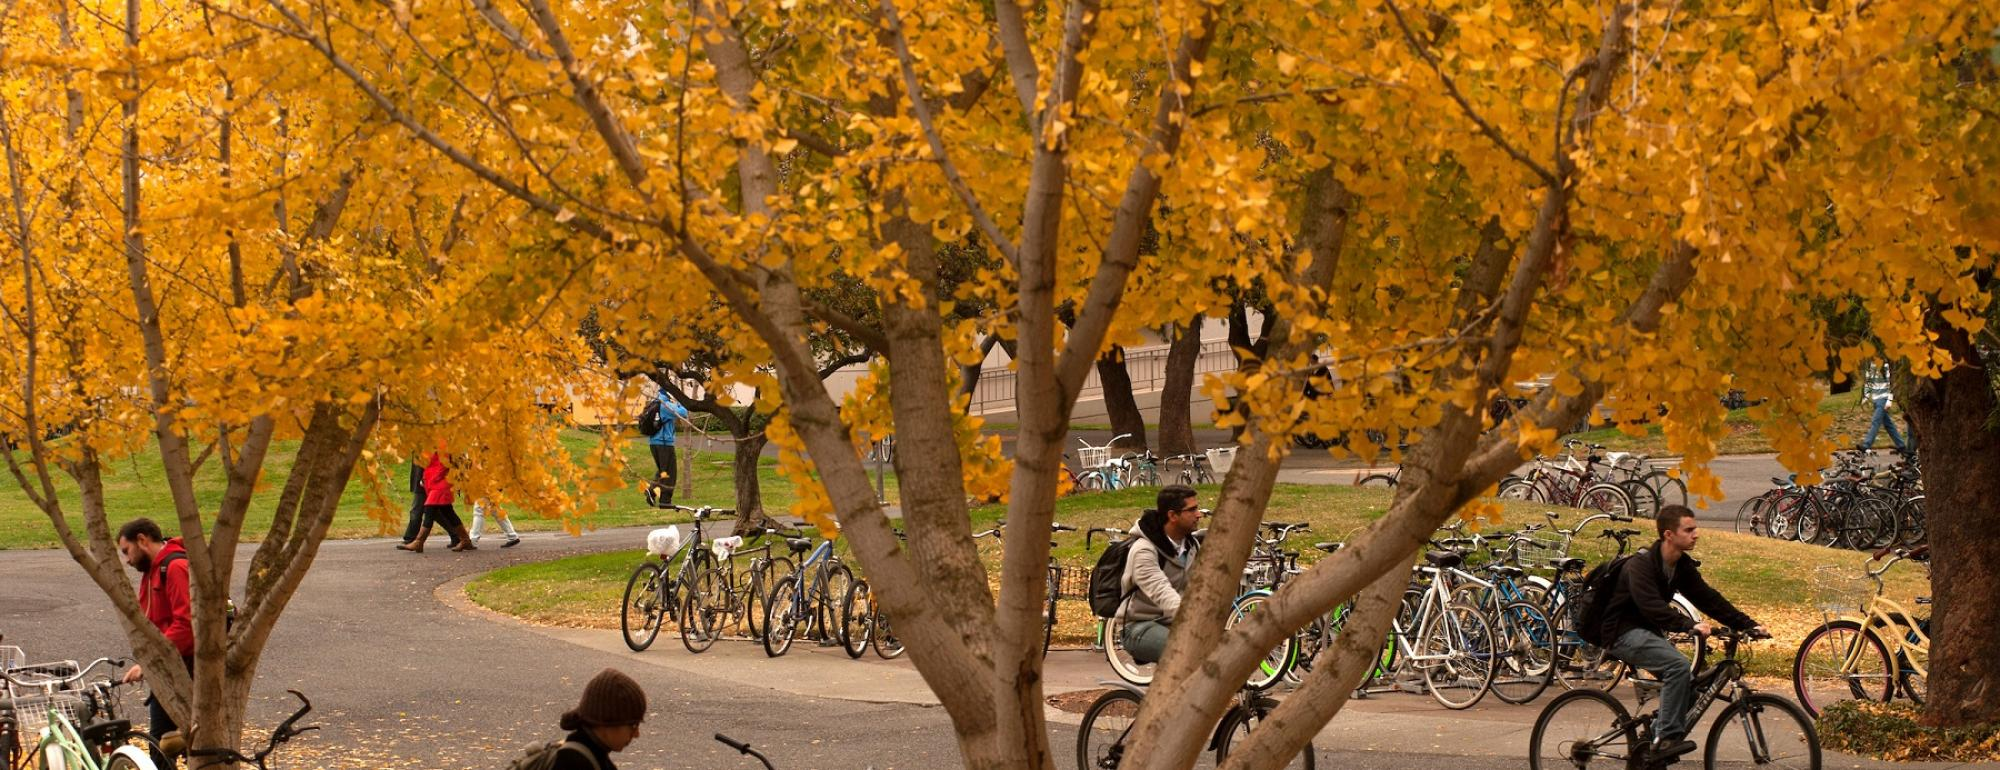 trees with fall yellow leaves and students on bikes